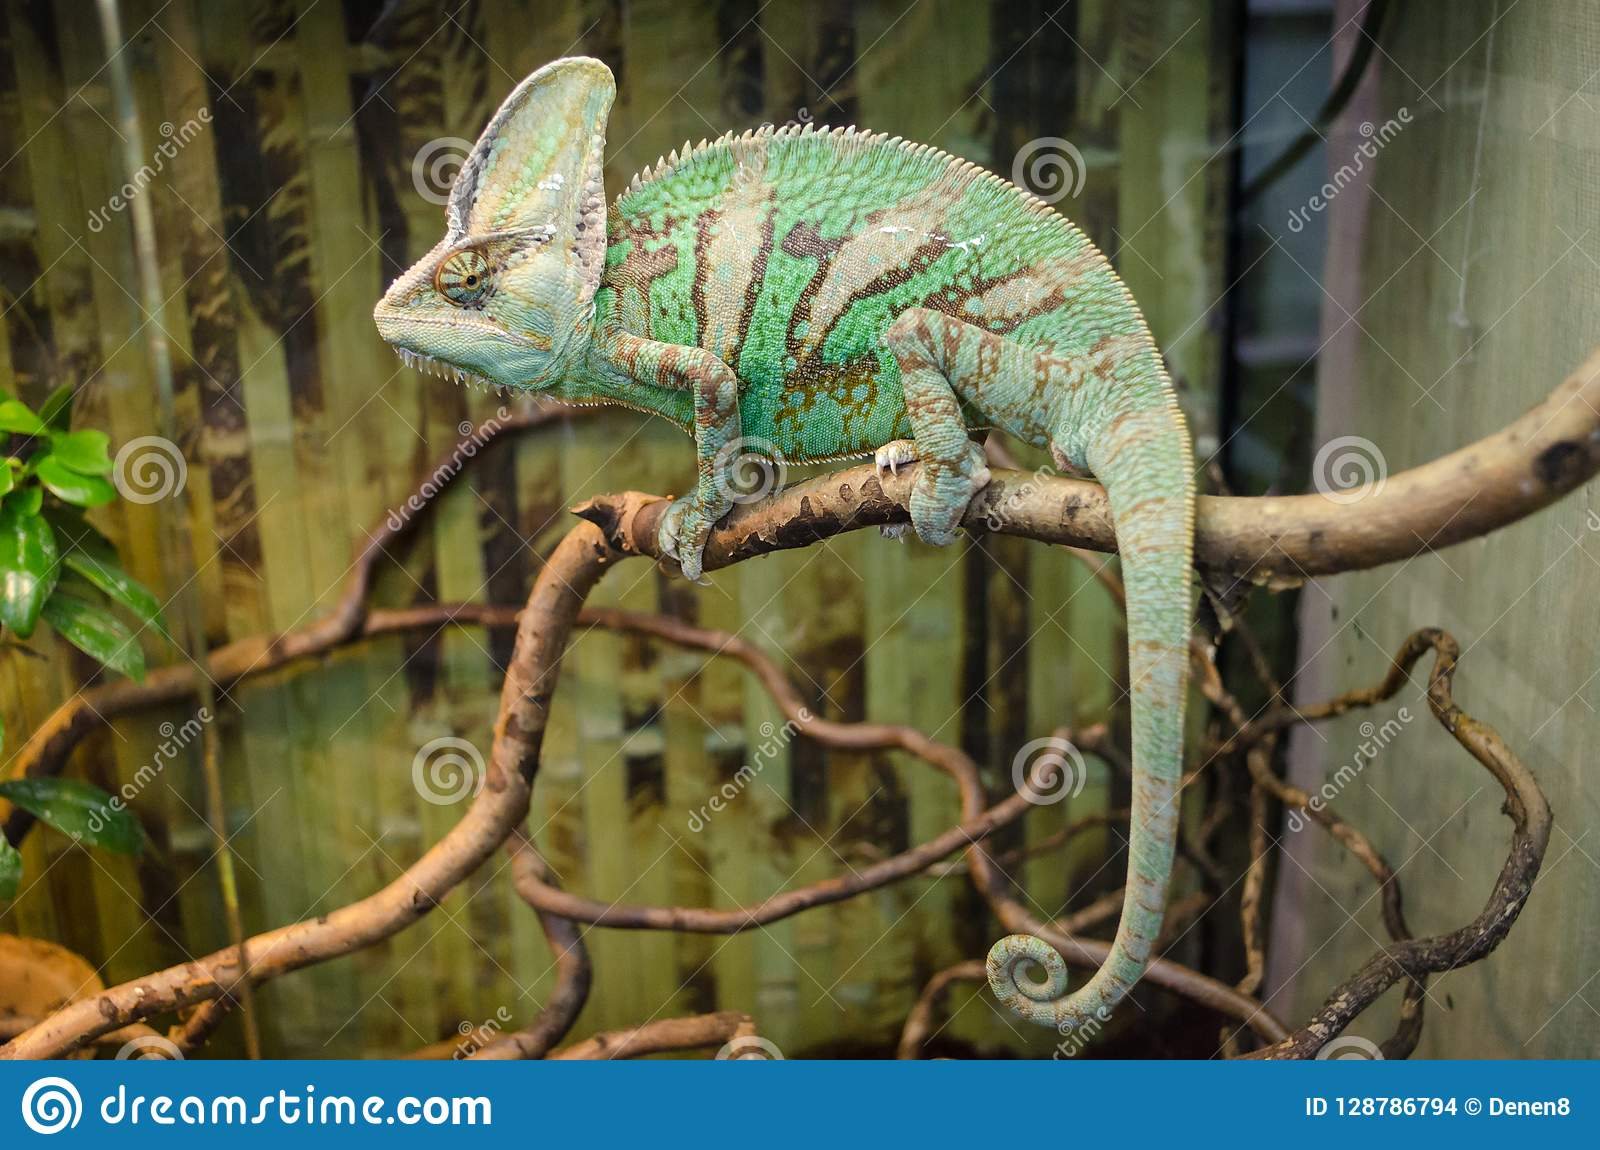 Green striped chameleon sits on a branch